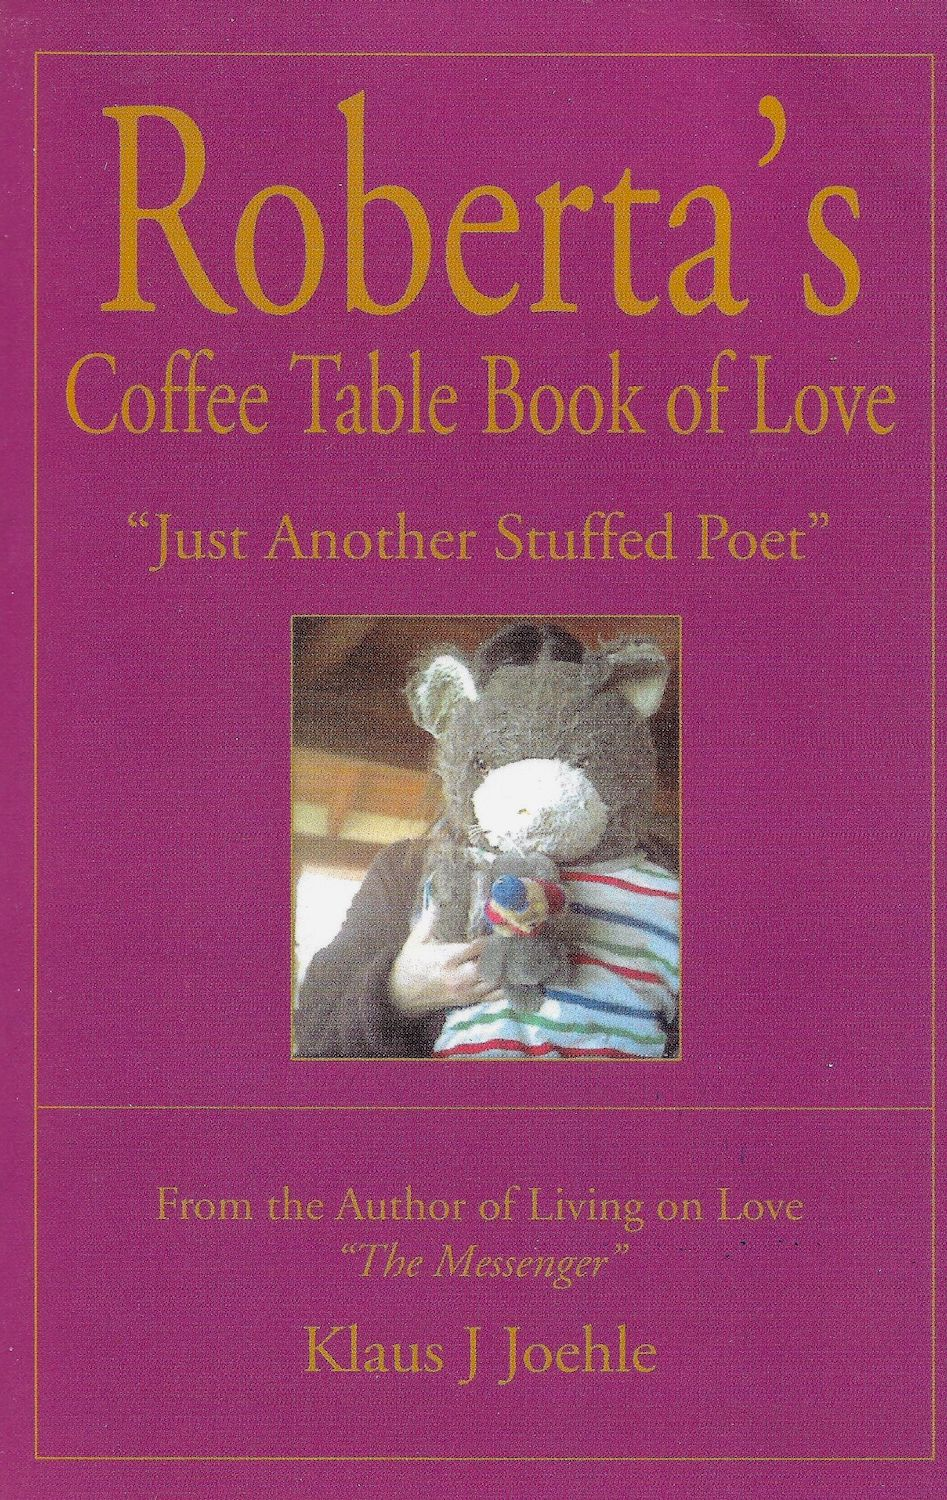 coffee table book of love, Klaus Joehle author, Living on Love